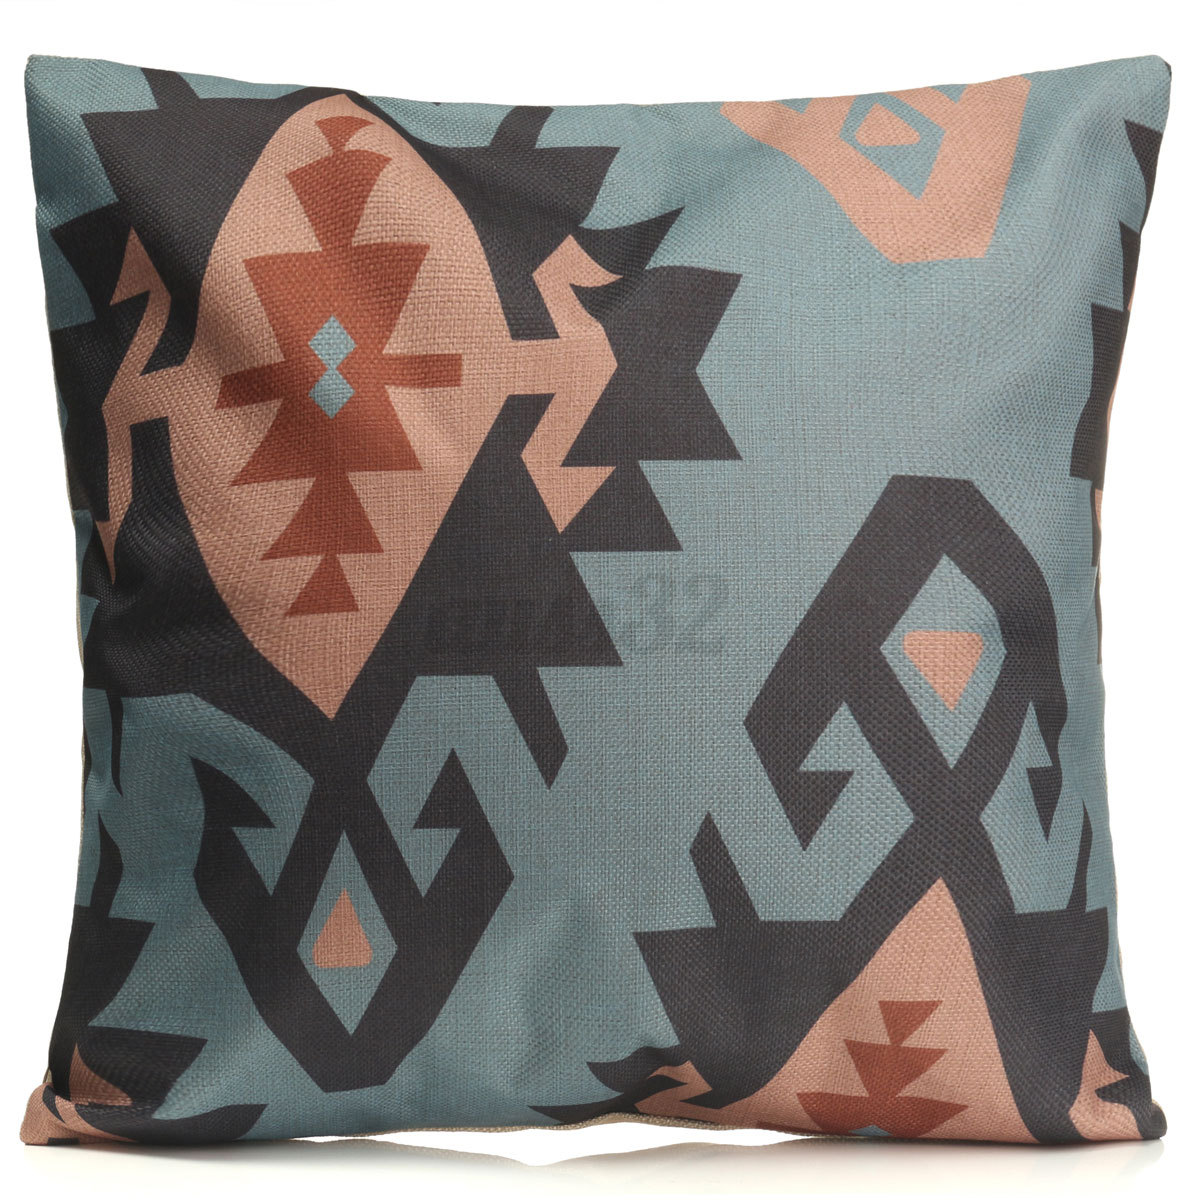 Xmas Geometric Flower Cotton Linen Pillow Case Throw Cushion Cover Home Decor eBay